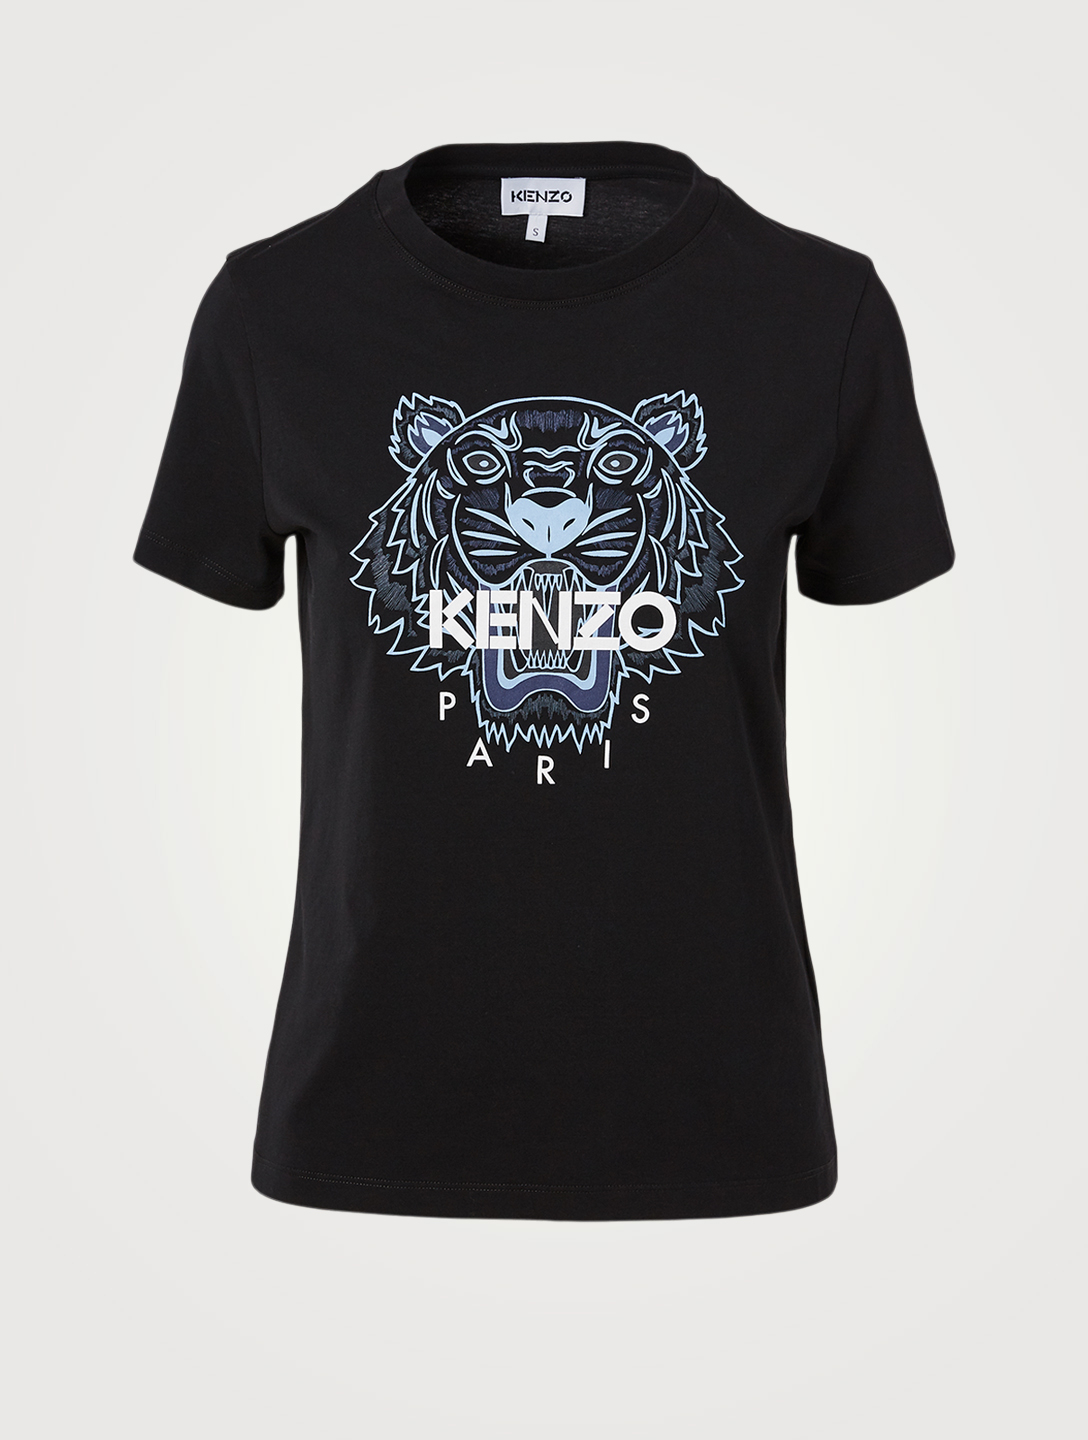 KENZO Classic Tiger Cotton T-Shirt Women's Black